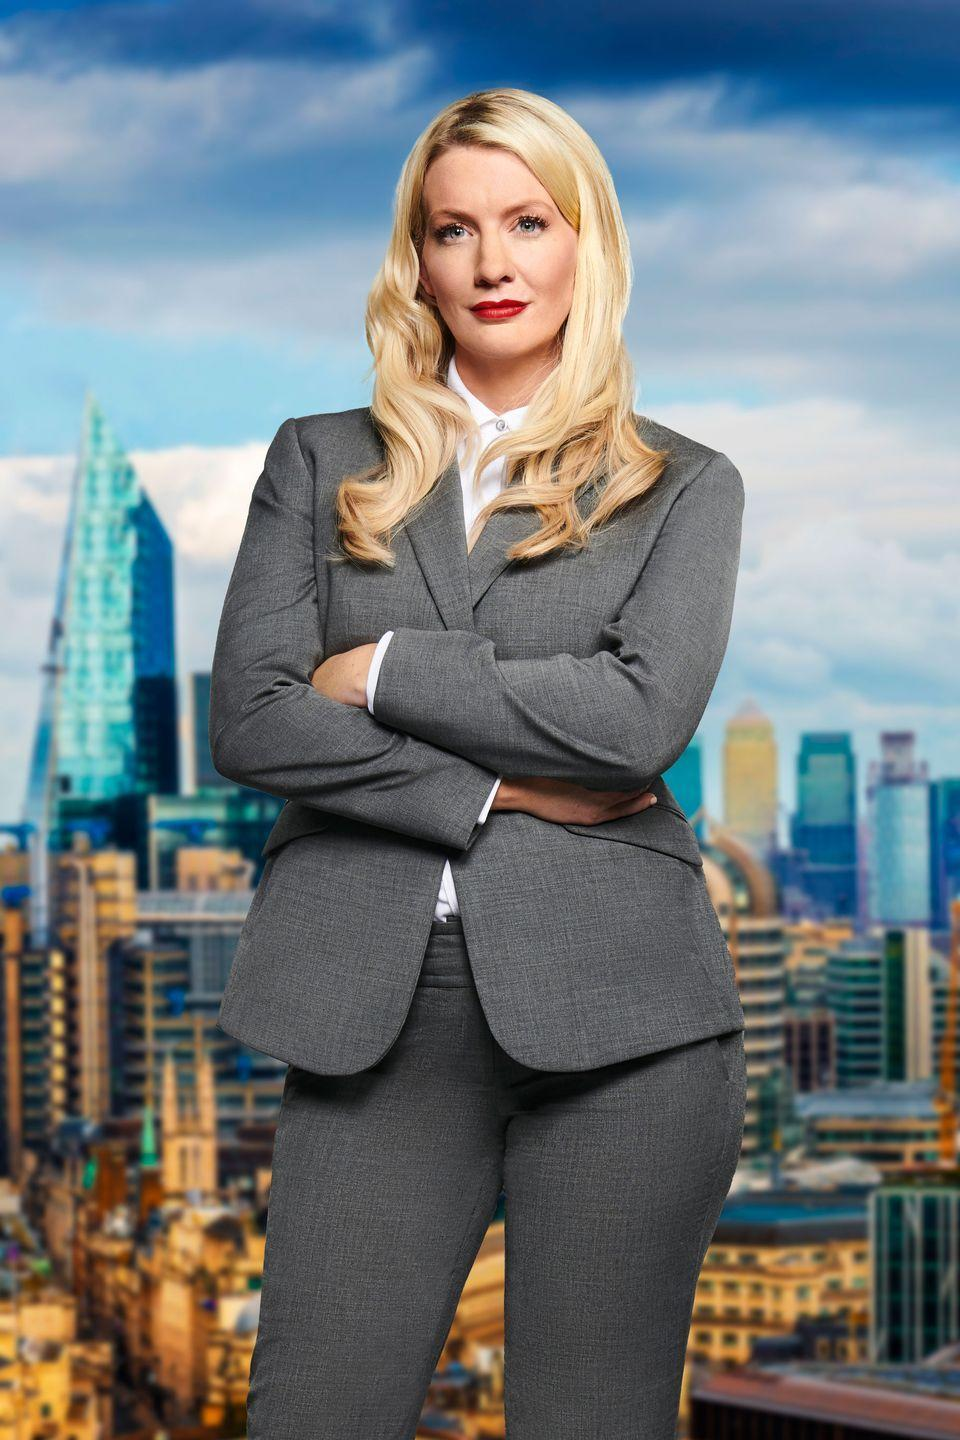 """<p>""""I'm definitely the epitome of 'don't judge a book by its cover' because what you see is not what you get.""""</p><p>Marianne, from Lincolnshire, is a 36-year-old owner of a risk management company. She moved from the US to the UK in 2017 and sees conflict management as one of her strongest skills. She also says she has no filter and may need to """"dial down her American-ness"""".</p>"""